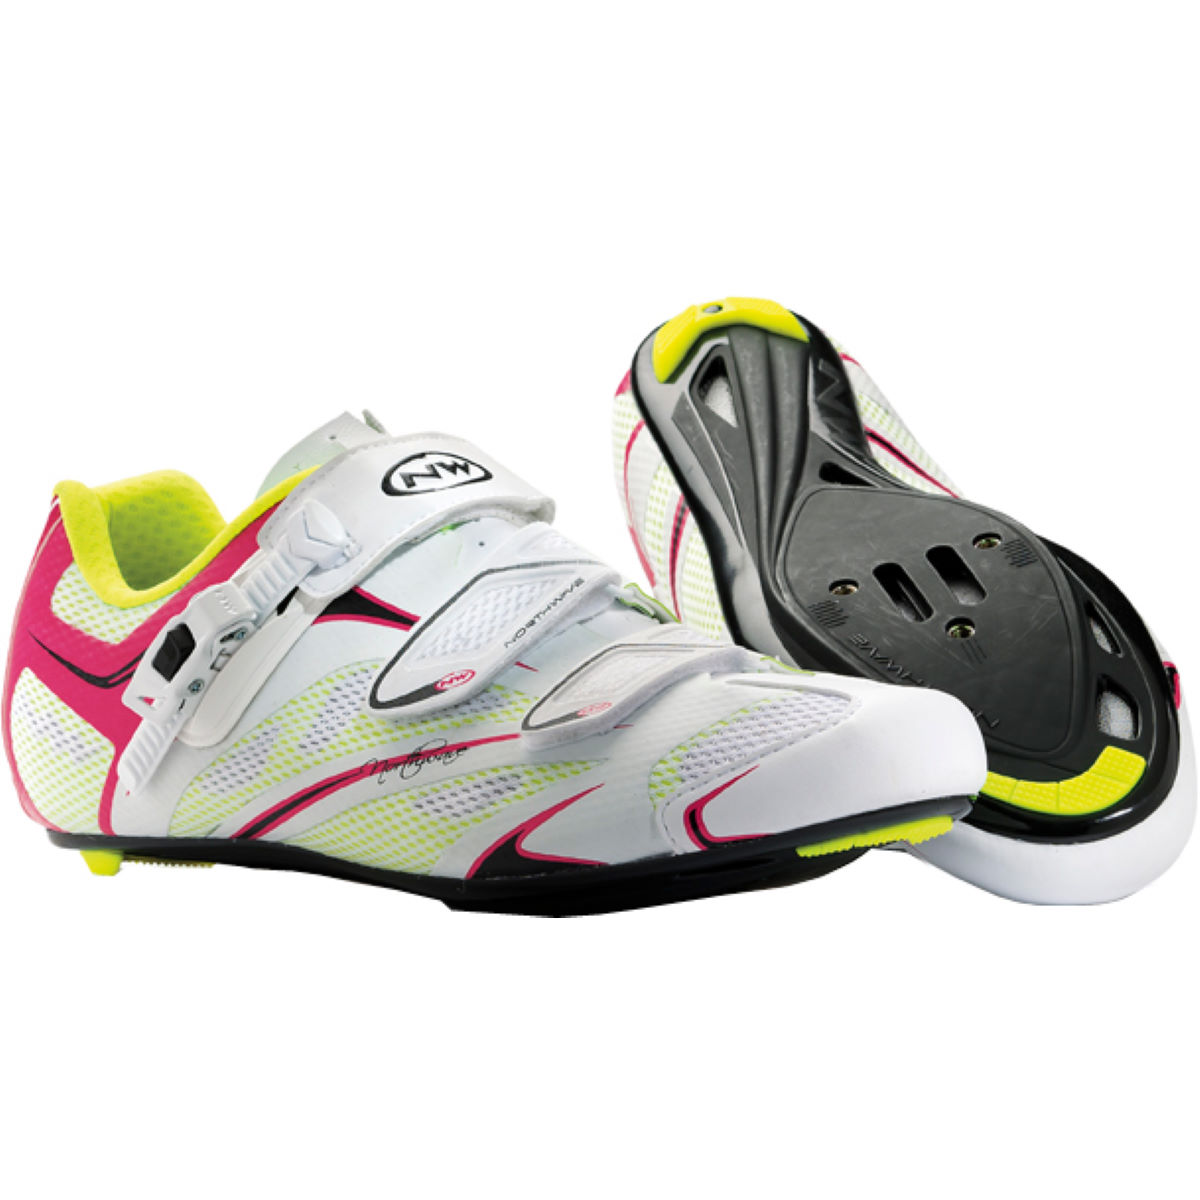 Northwave Verve Cycling Shoes Womens